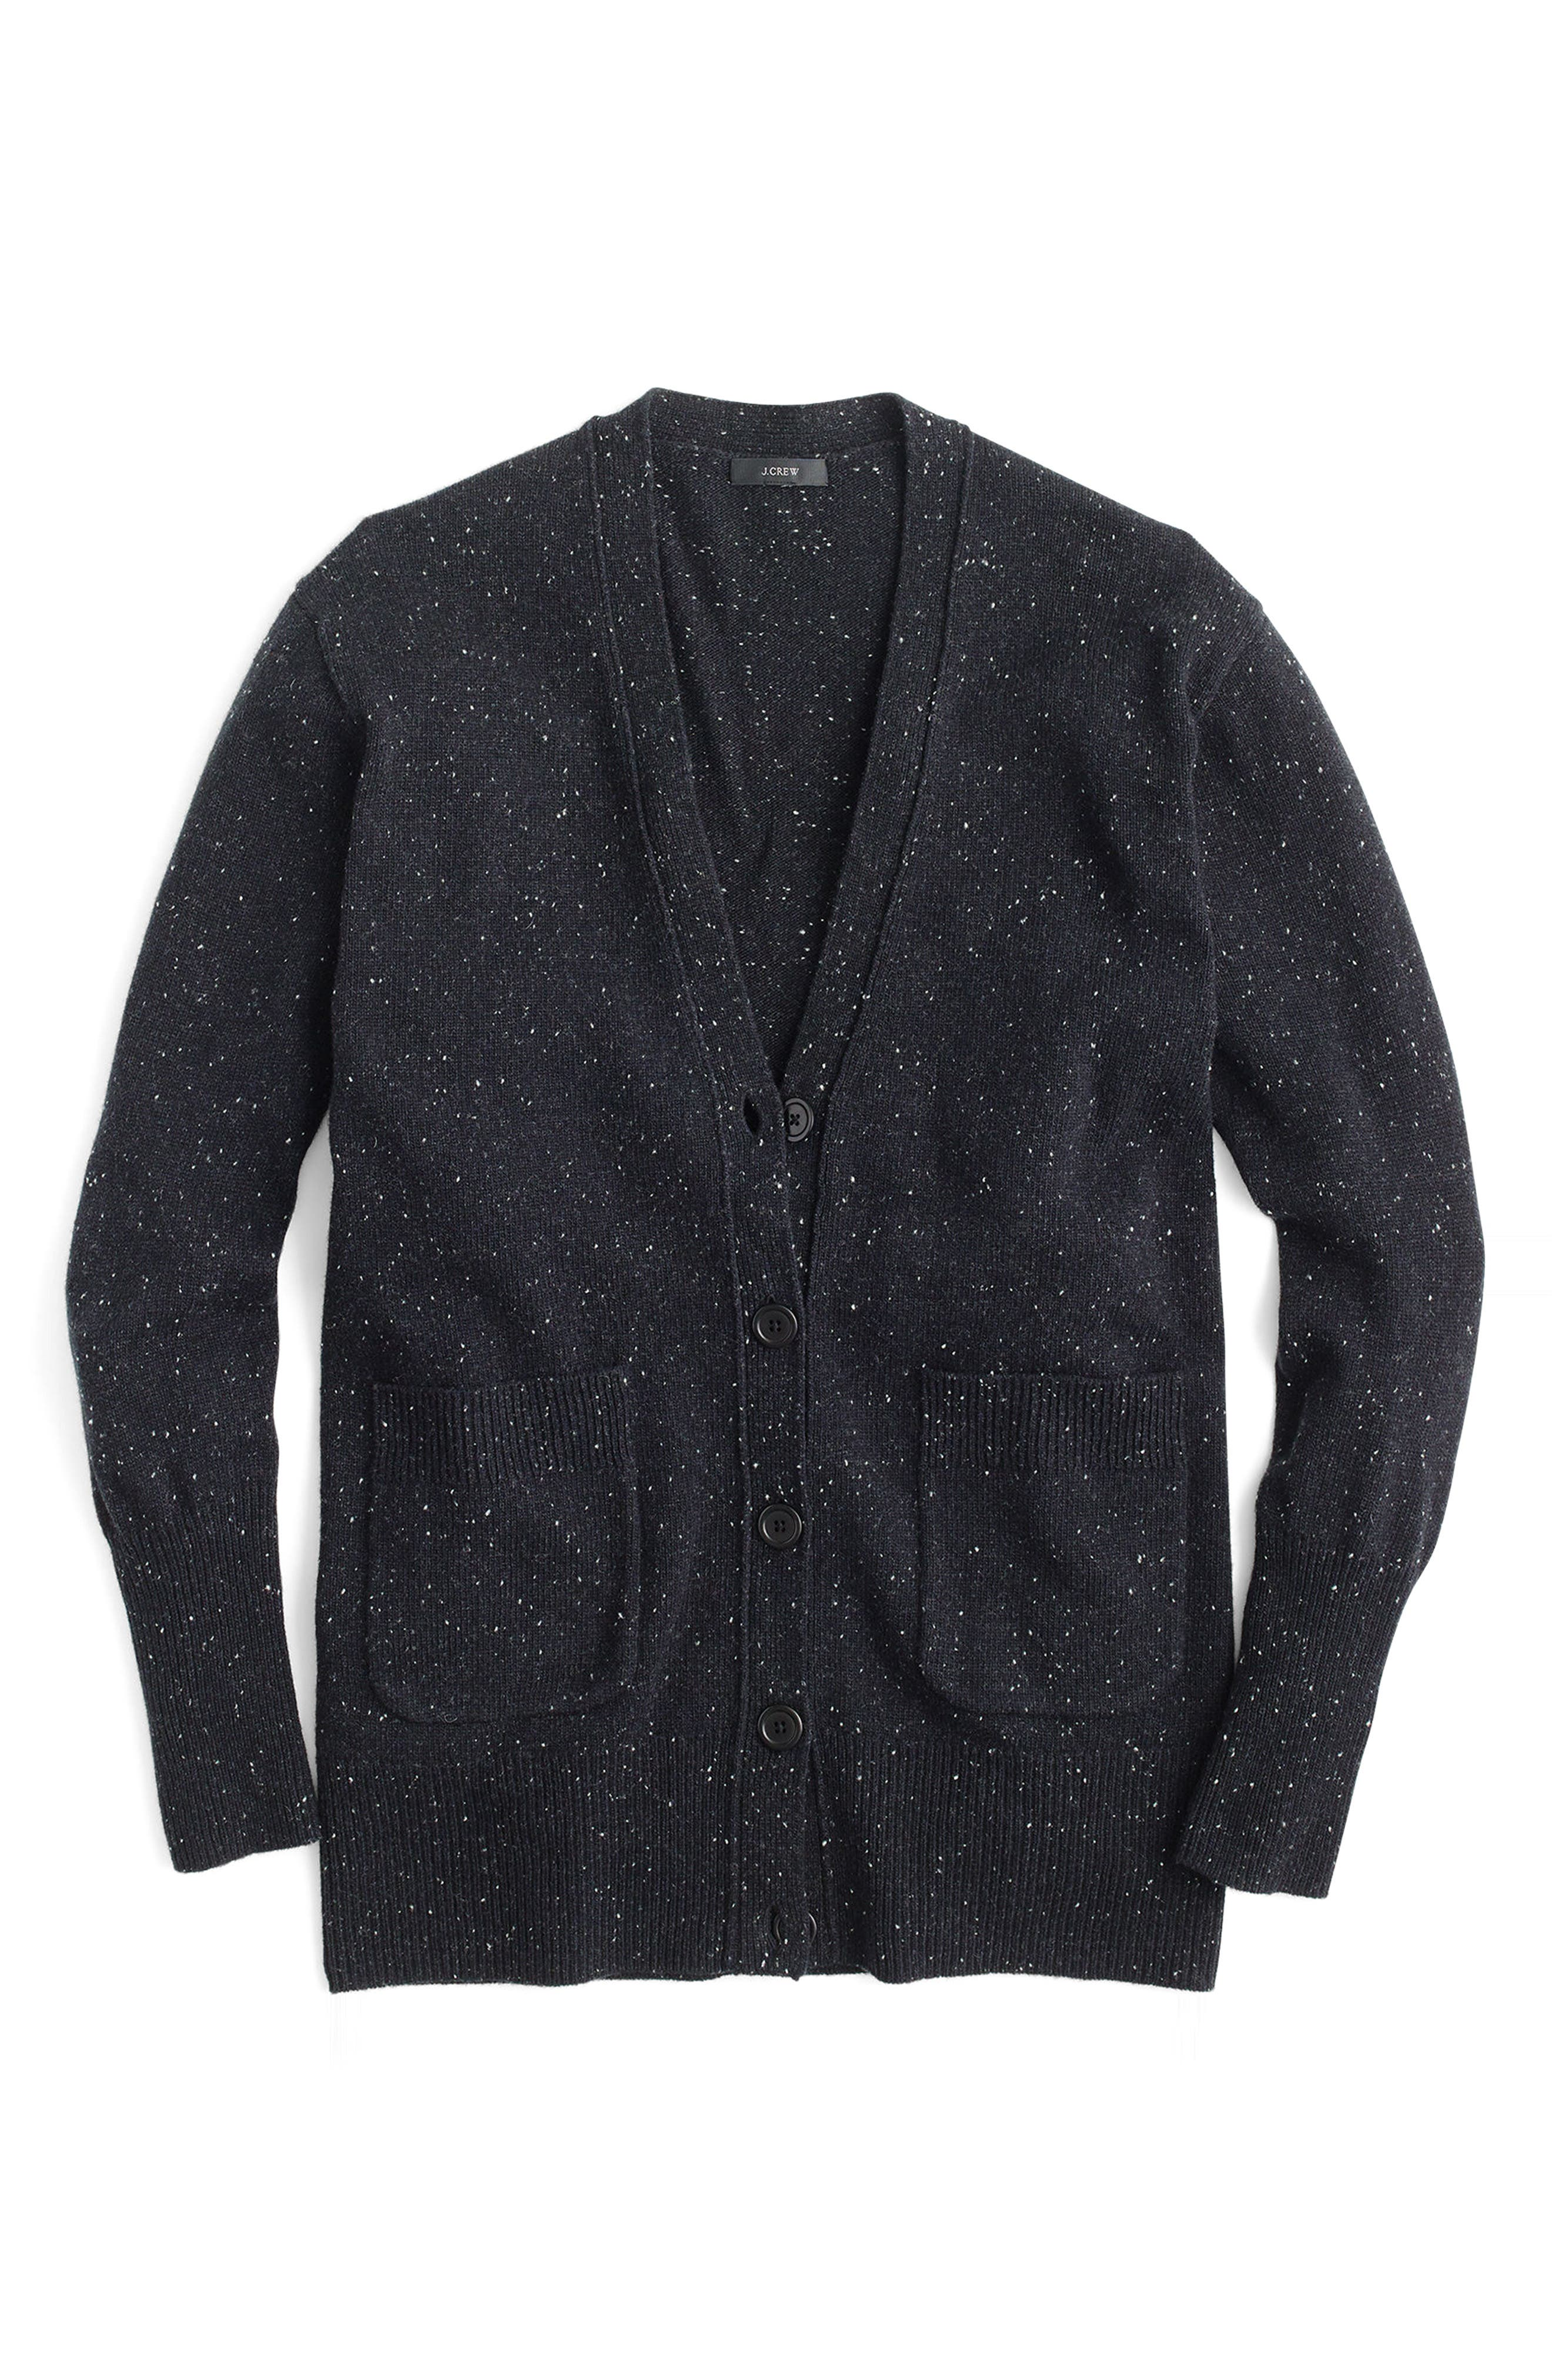 Long Donegal Wool Cardigan,                             Alternate thumbnail 6, color,                             001